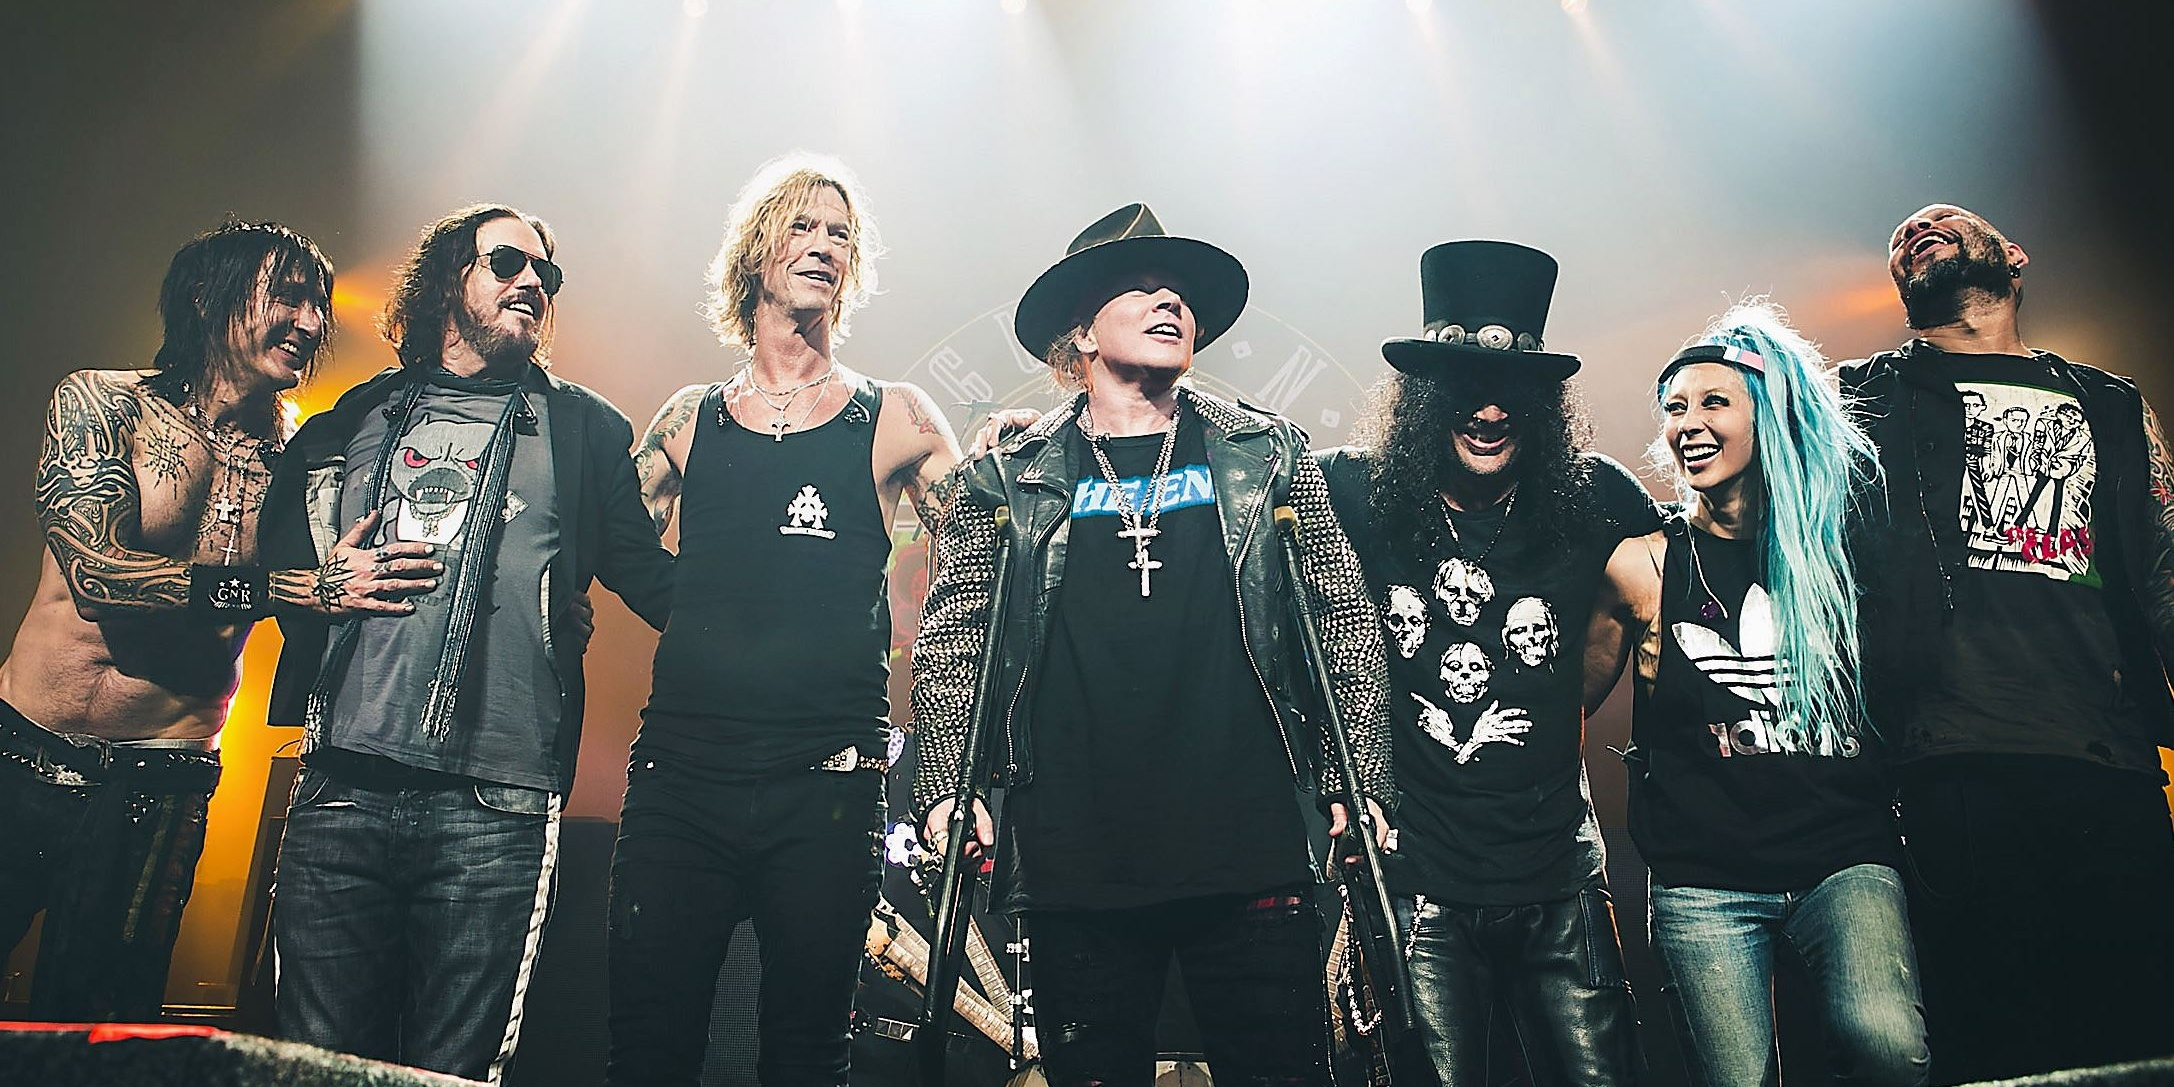 Here's what you can expect from the first show in Singapore by Guns N' Roses